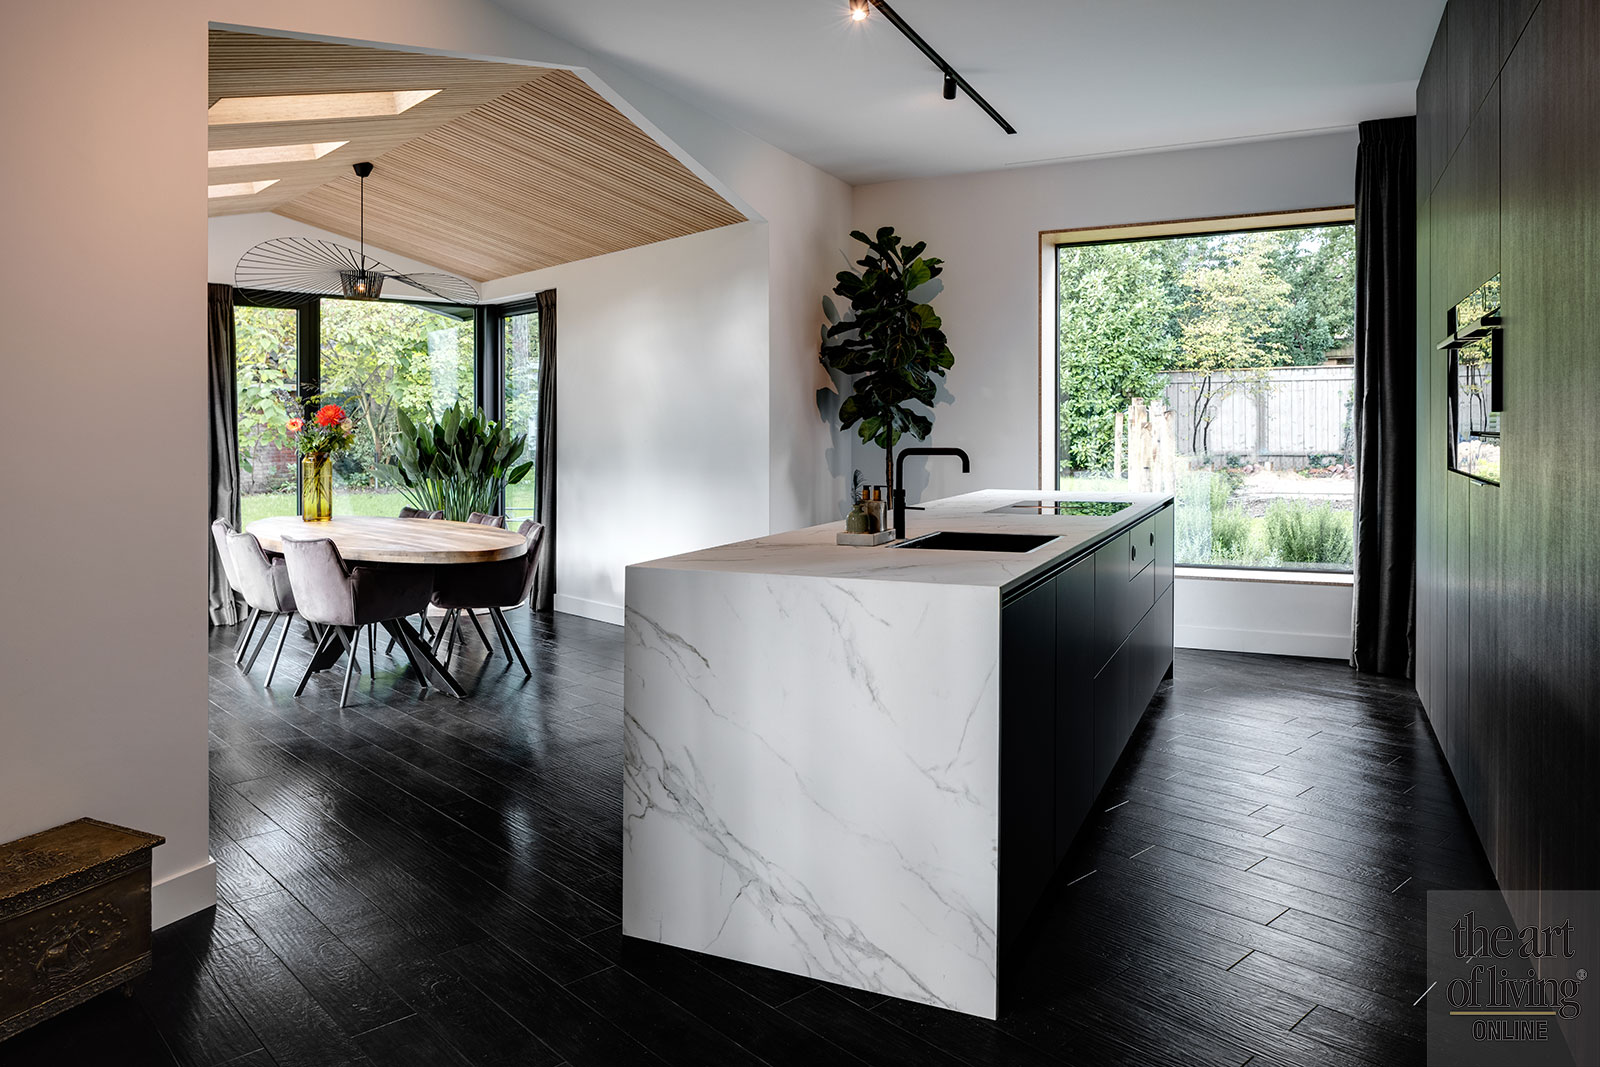 Gerenoveerde villa | Colla Architecten, the art of living